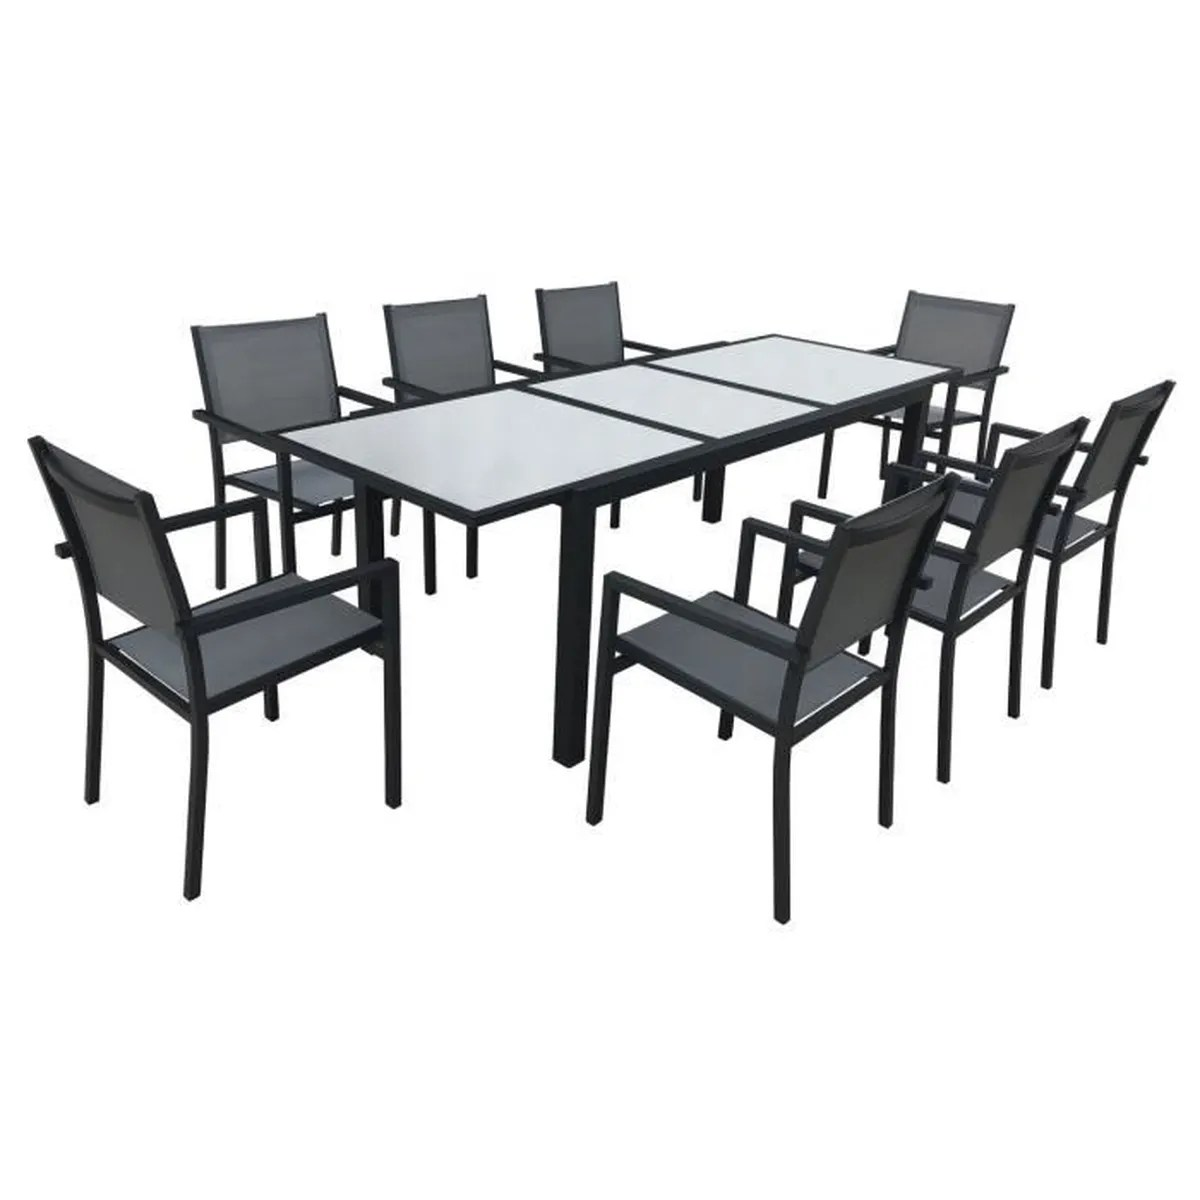 Salon Textilène Table + 8 Fauteuils Encastrables | Salon De Jardin ...